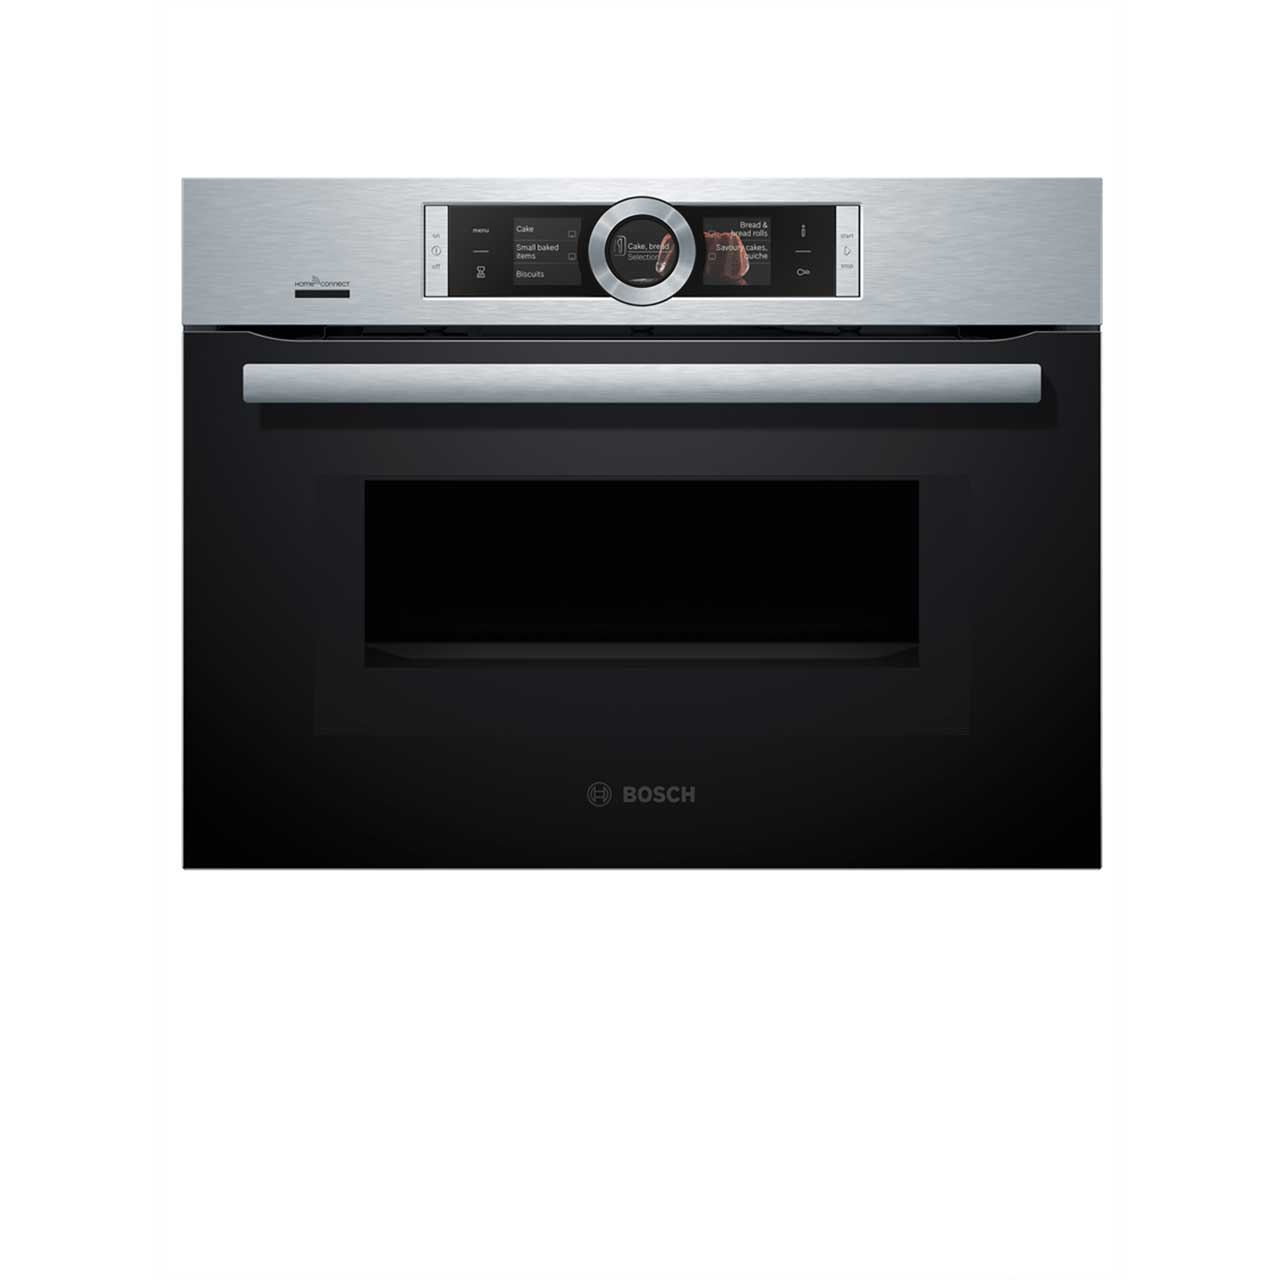 bosch serie 8 cmg676bs6b built in combination microwave oven brushed steel. Black Bedroom Furniture Sets. Home Design Ideas